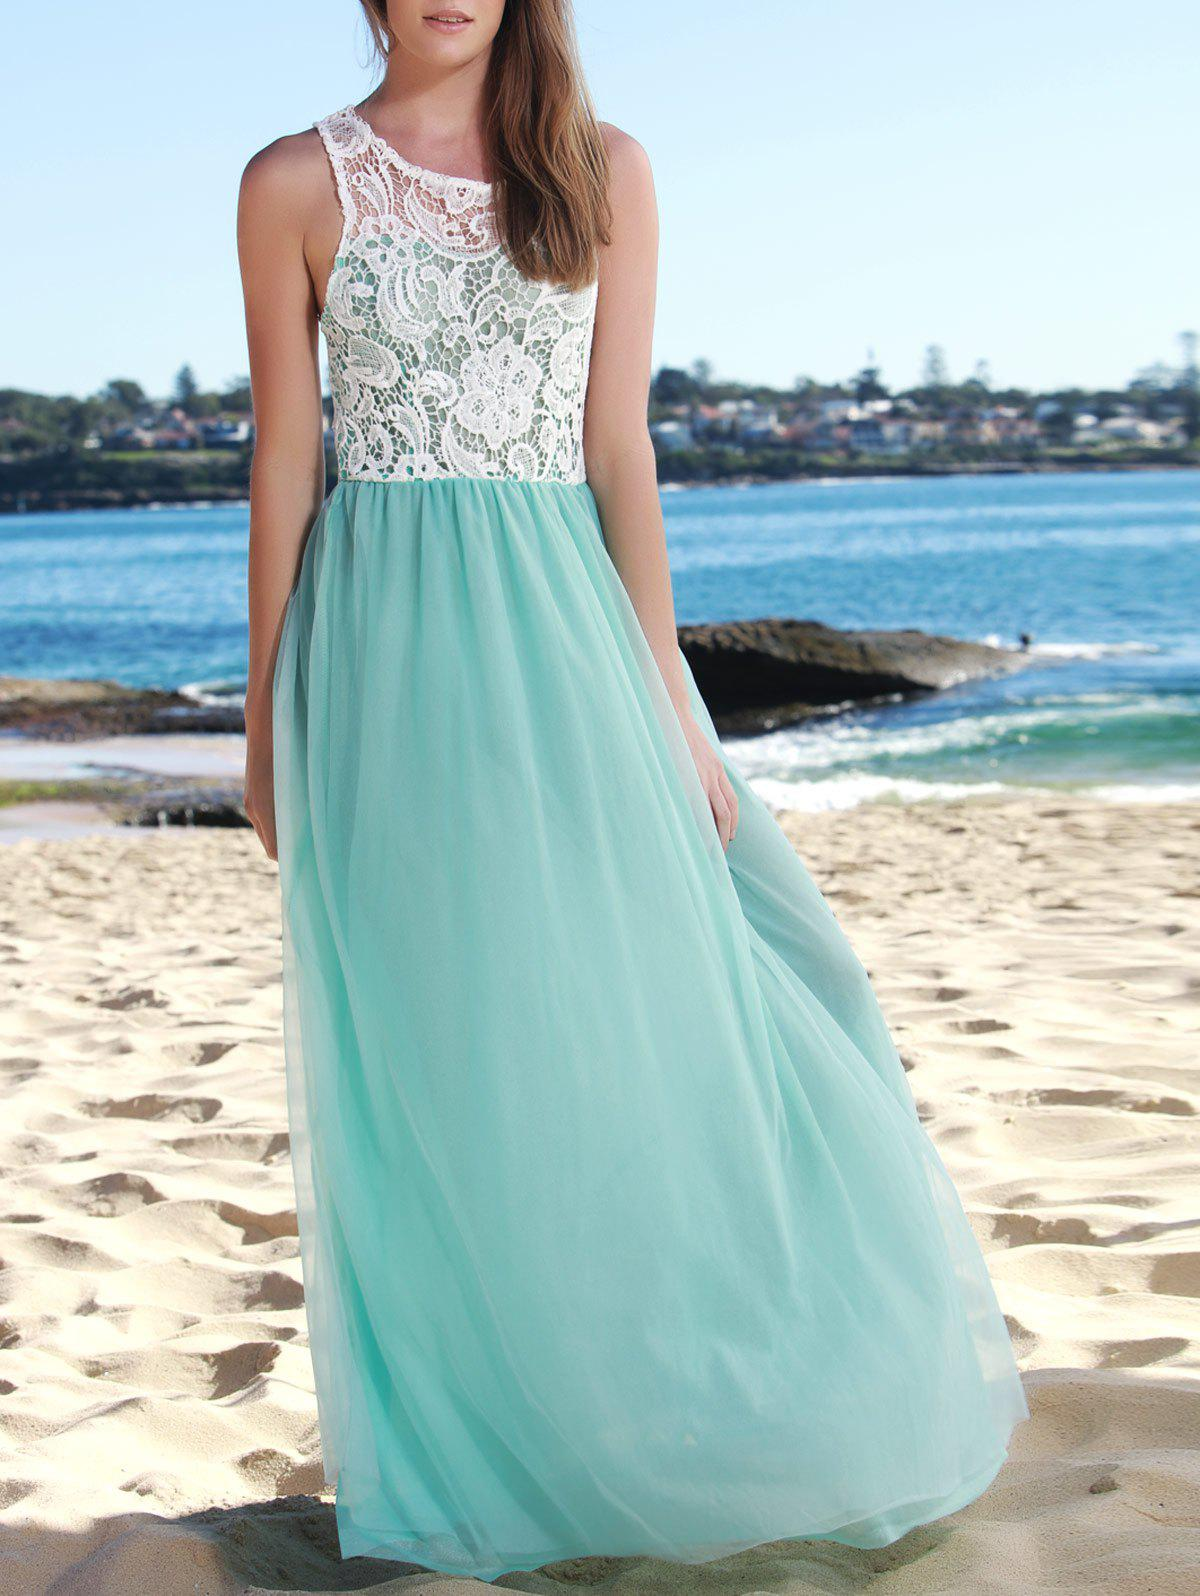 Elegant Hollow Out Lace Spliced Sleeveless Layered Gauze Maxi Prom Dress For Women - LAKE BLUE S